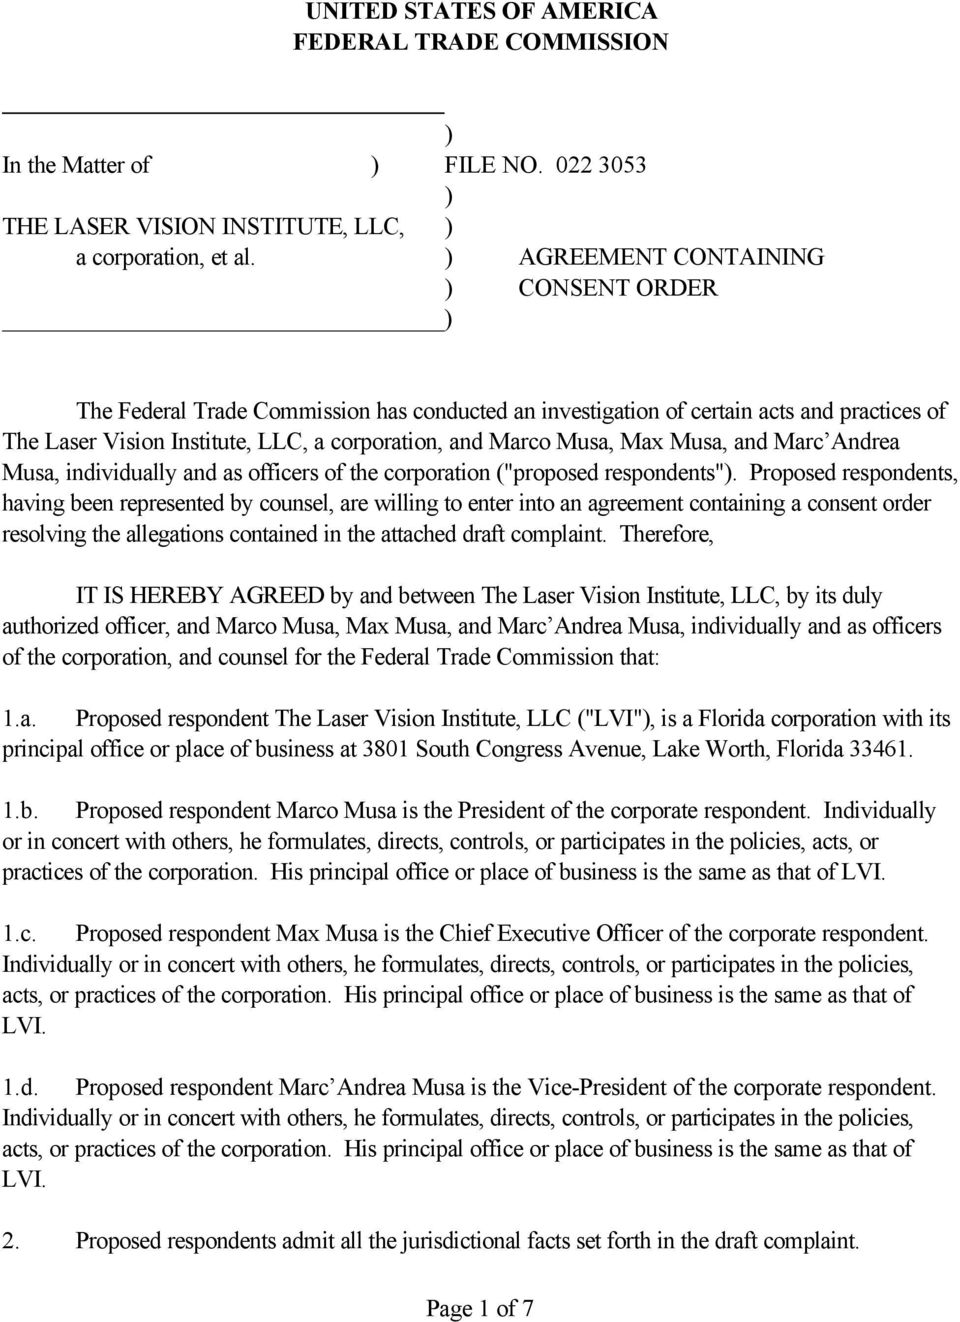 "Max Musa, and Marc Andrea Musa, individually and as officers of the corporation (""proposed respondents"")."